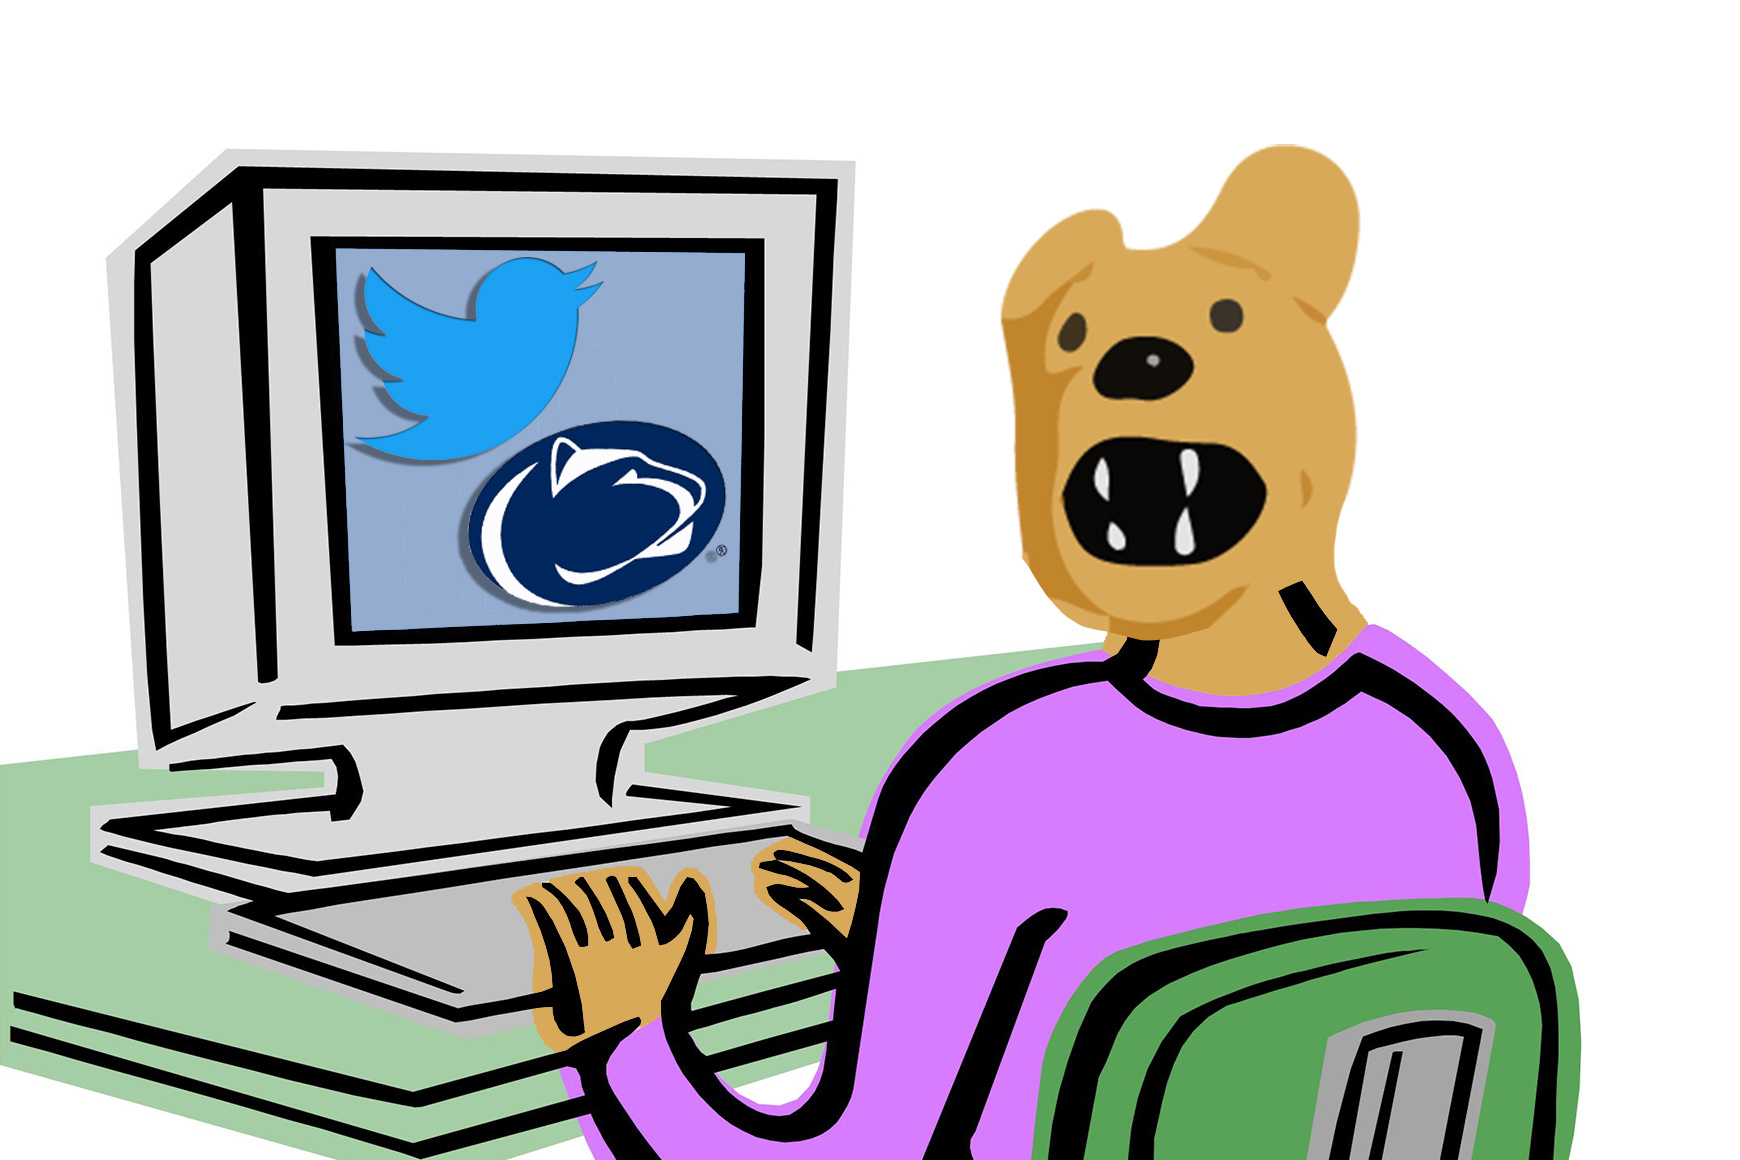 Penn State <b>Twitter</b> Accounts That Deserve To Be Verified thumbnail